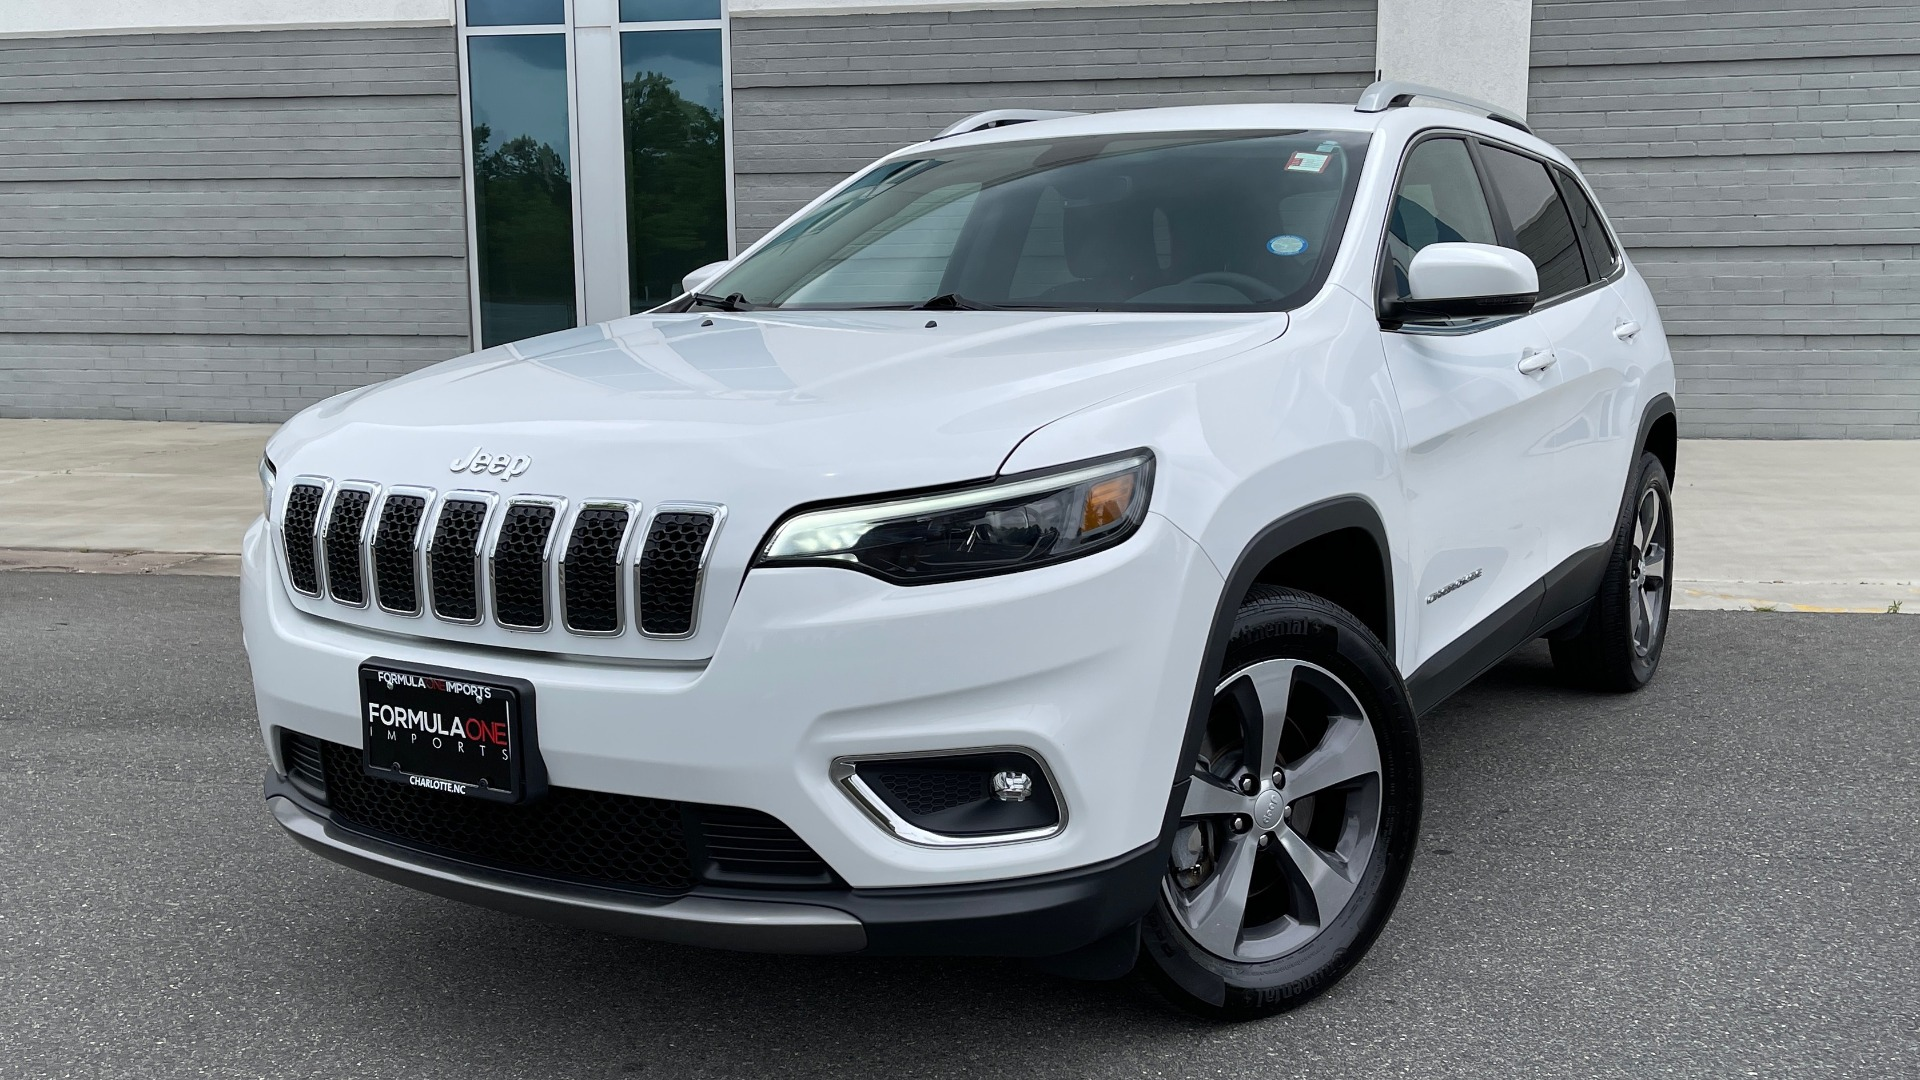 Used 2019 Jeep CHEROKEE LIMITED 4X4 / KEYLESS-GO / BLIND SPOT AND CROSS PATH / REMOTE START / REARV for sale $26,995 at Formula Imports in Charlotte NC 28227 1